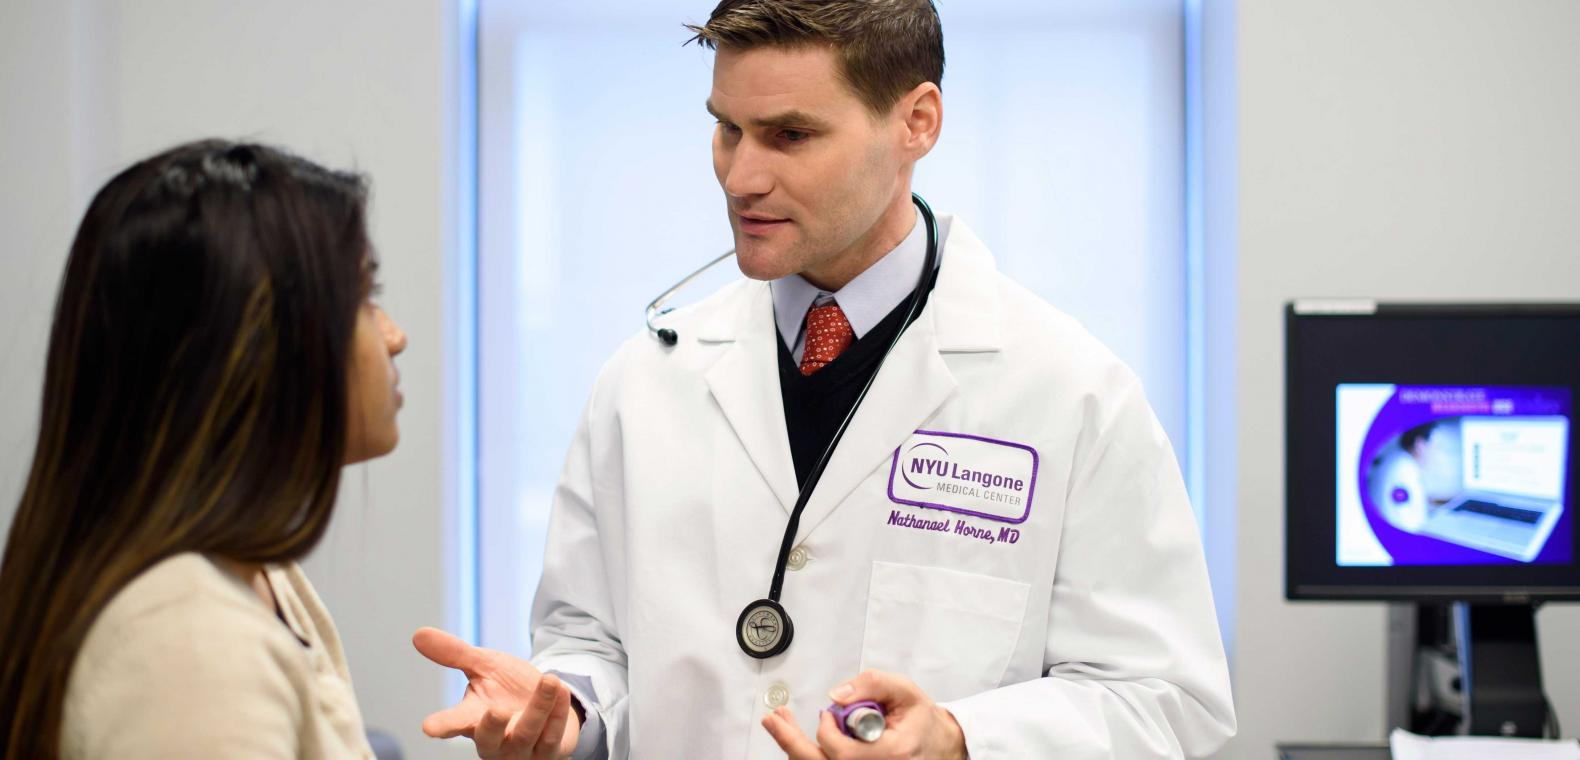 Allergy and Immunology Specialist Dr. Nathaniel Horne Speaks with Patient